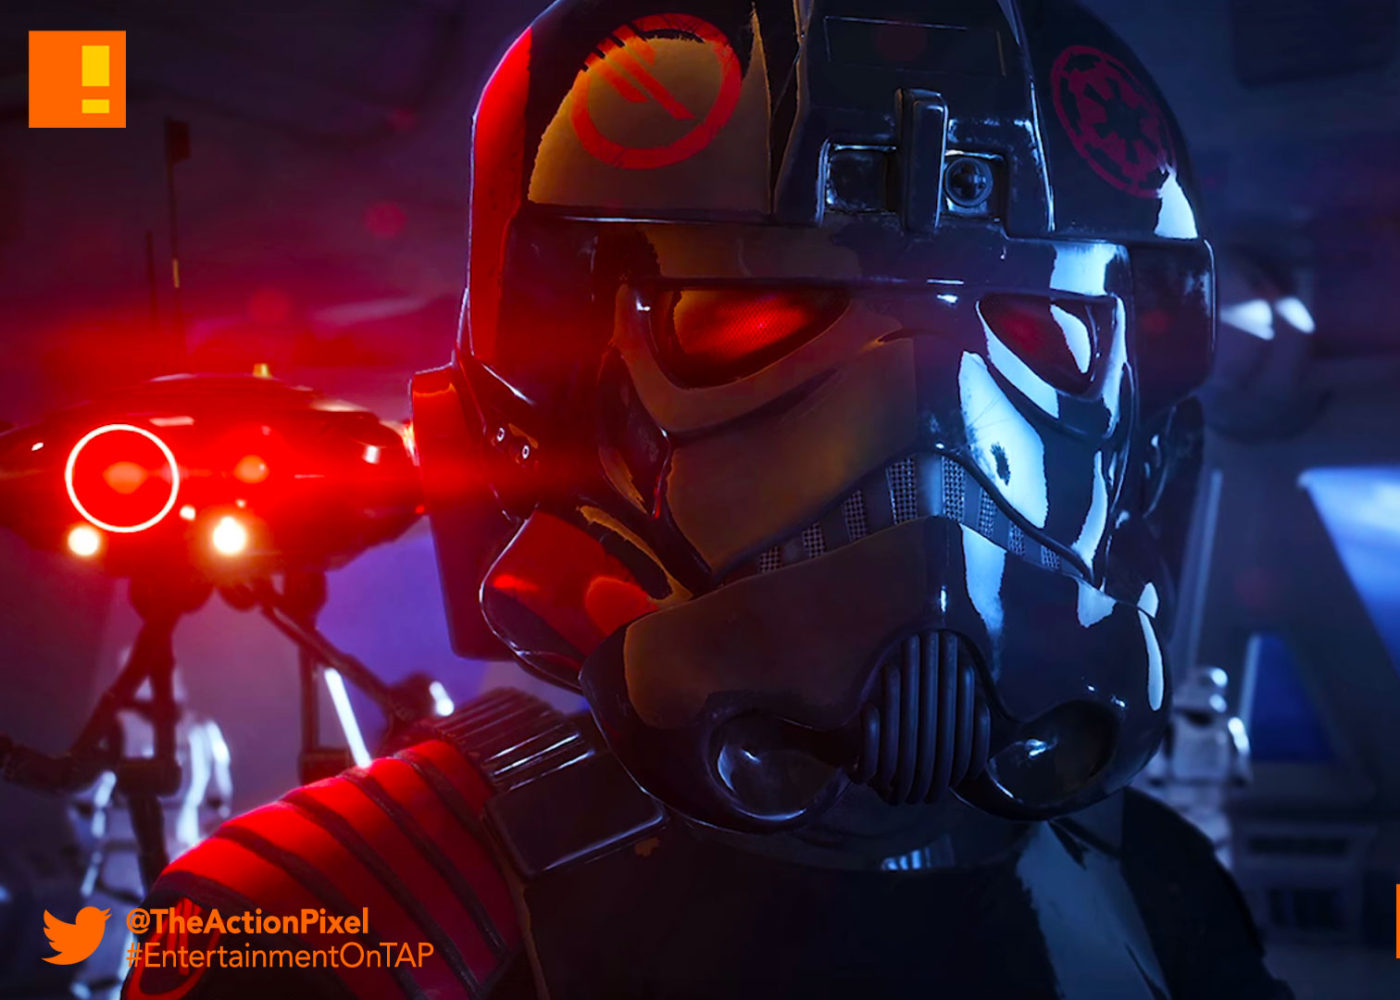 star wars, star wars: battlefront ii, star wars battlefront II, BATTLEFRONT II, battlefront 2, kylo ren, trailer, ea, dice games, ea dice, the action pixel, entertainment on tap,behind the story, bts,